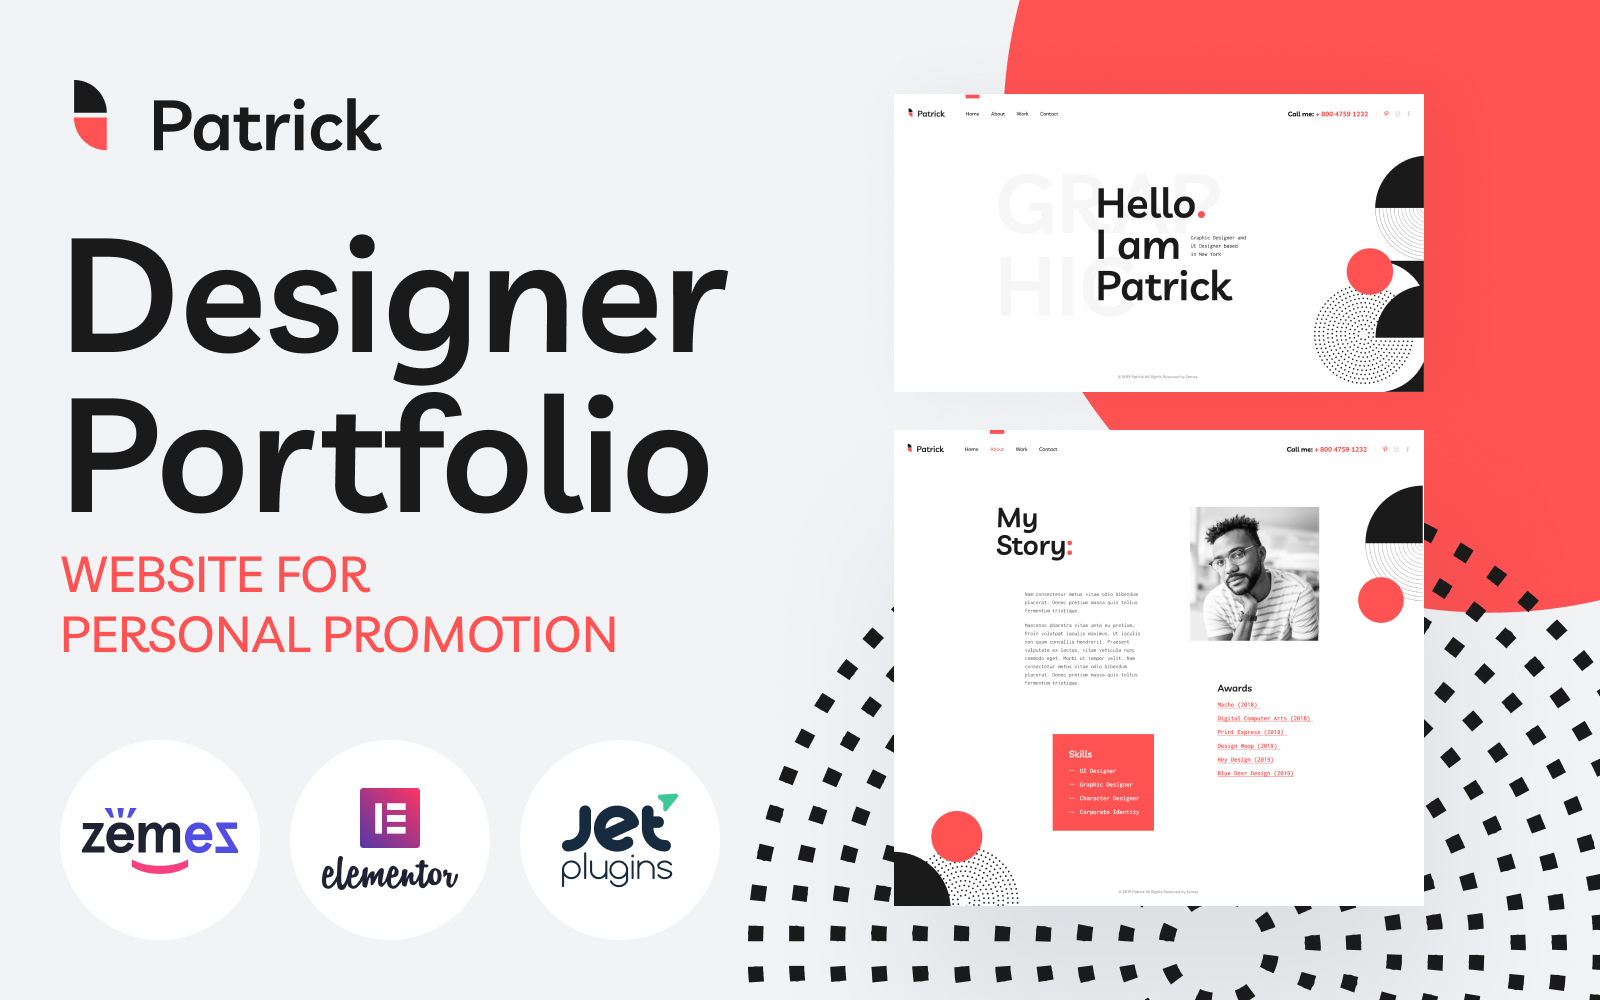 Patrick - Designer Portfolio Website for Personal Promotion WordPress Theme